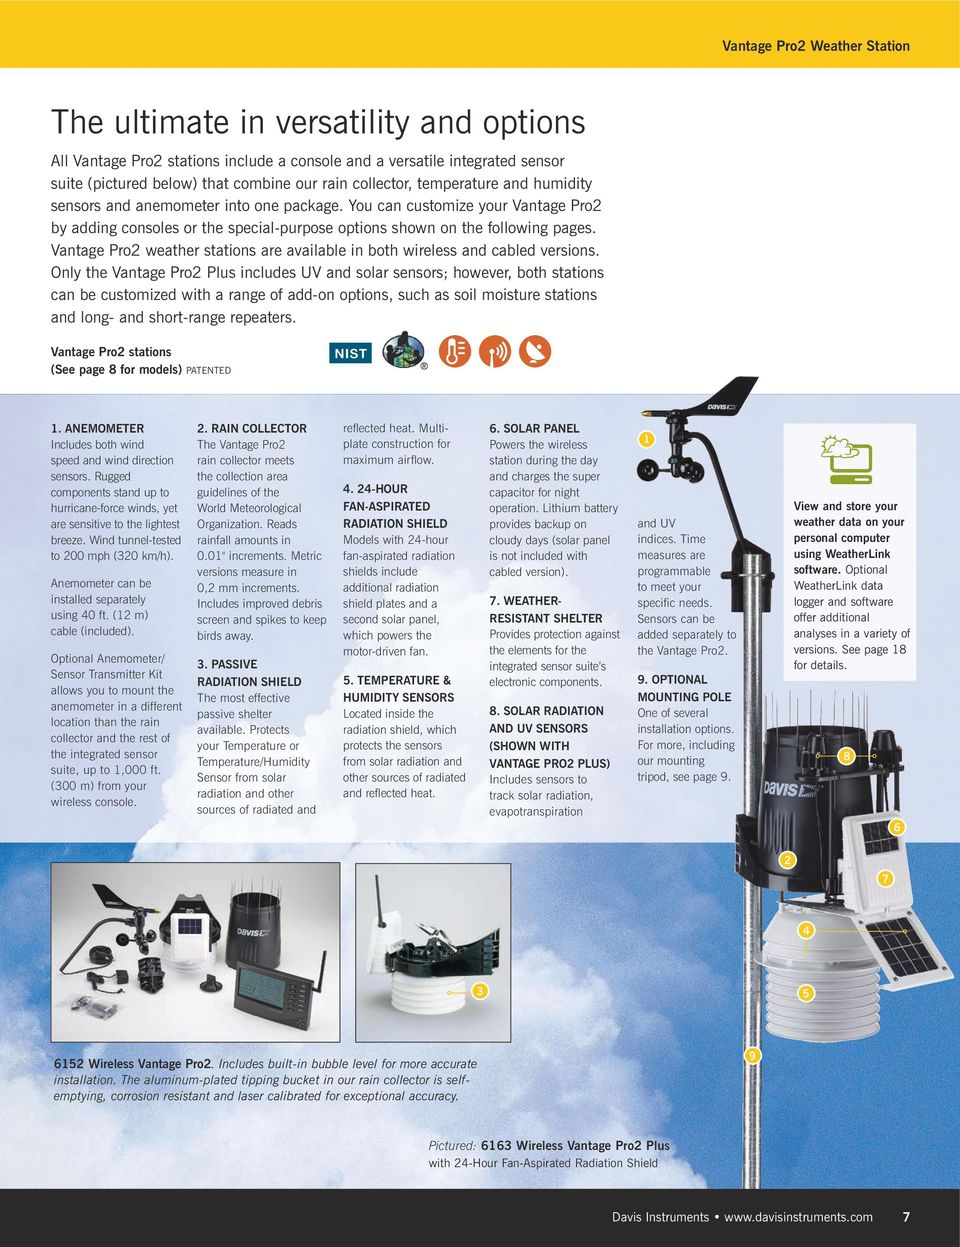 Vantage Pro2 weather stations are available in both wireless and cabled versions.